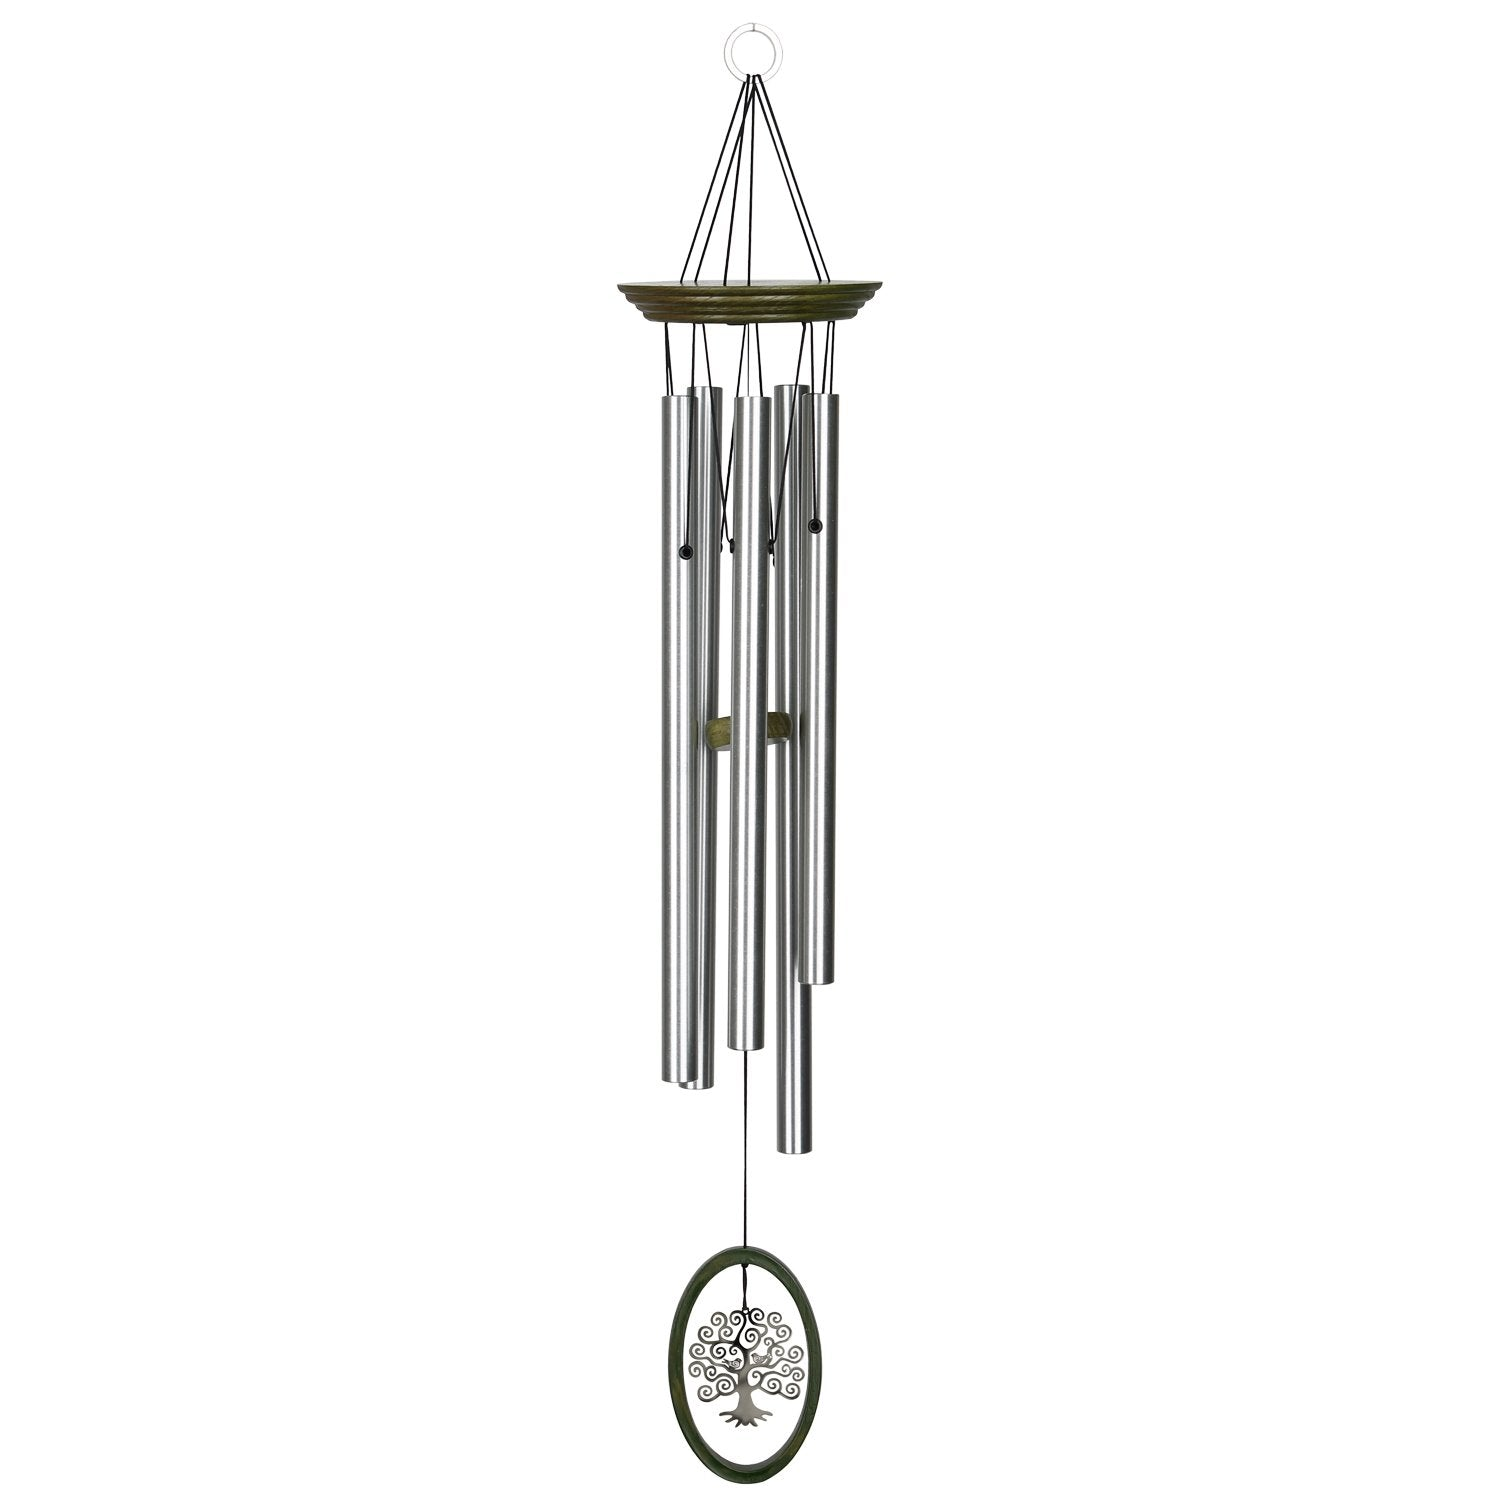 Wind Fantasy Chime - Tree of Life full product image